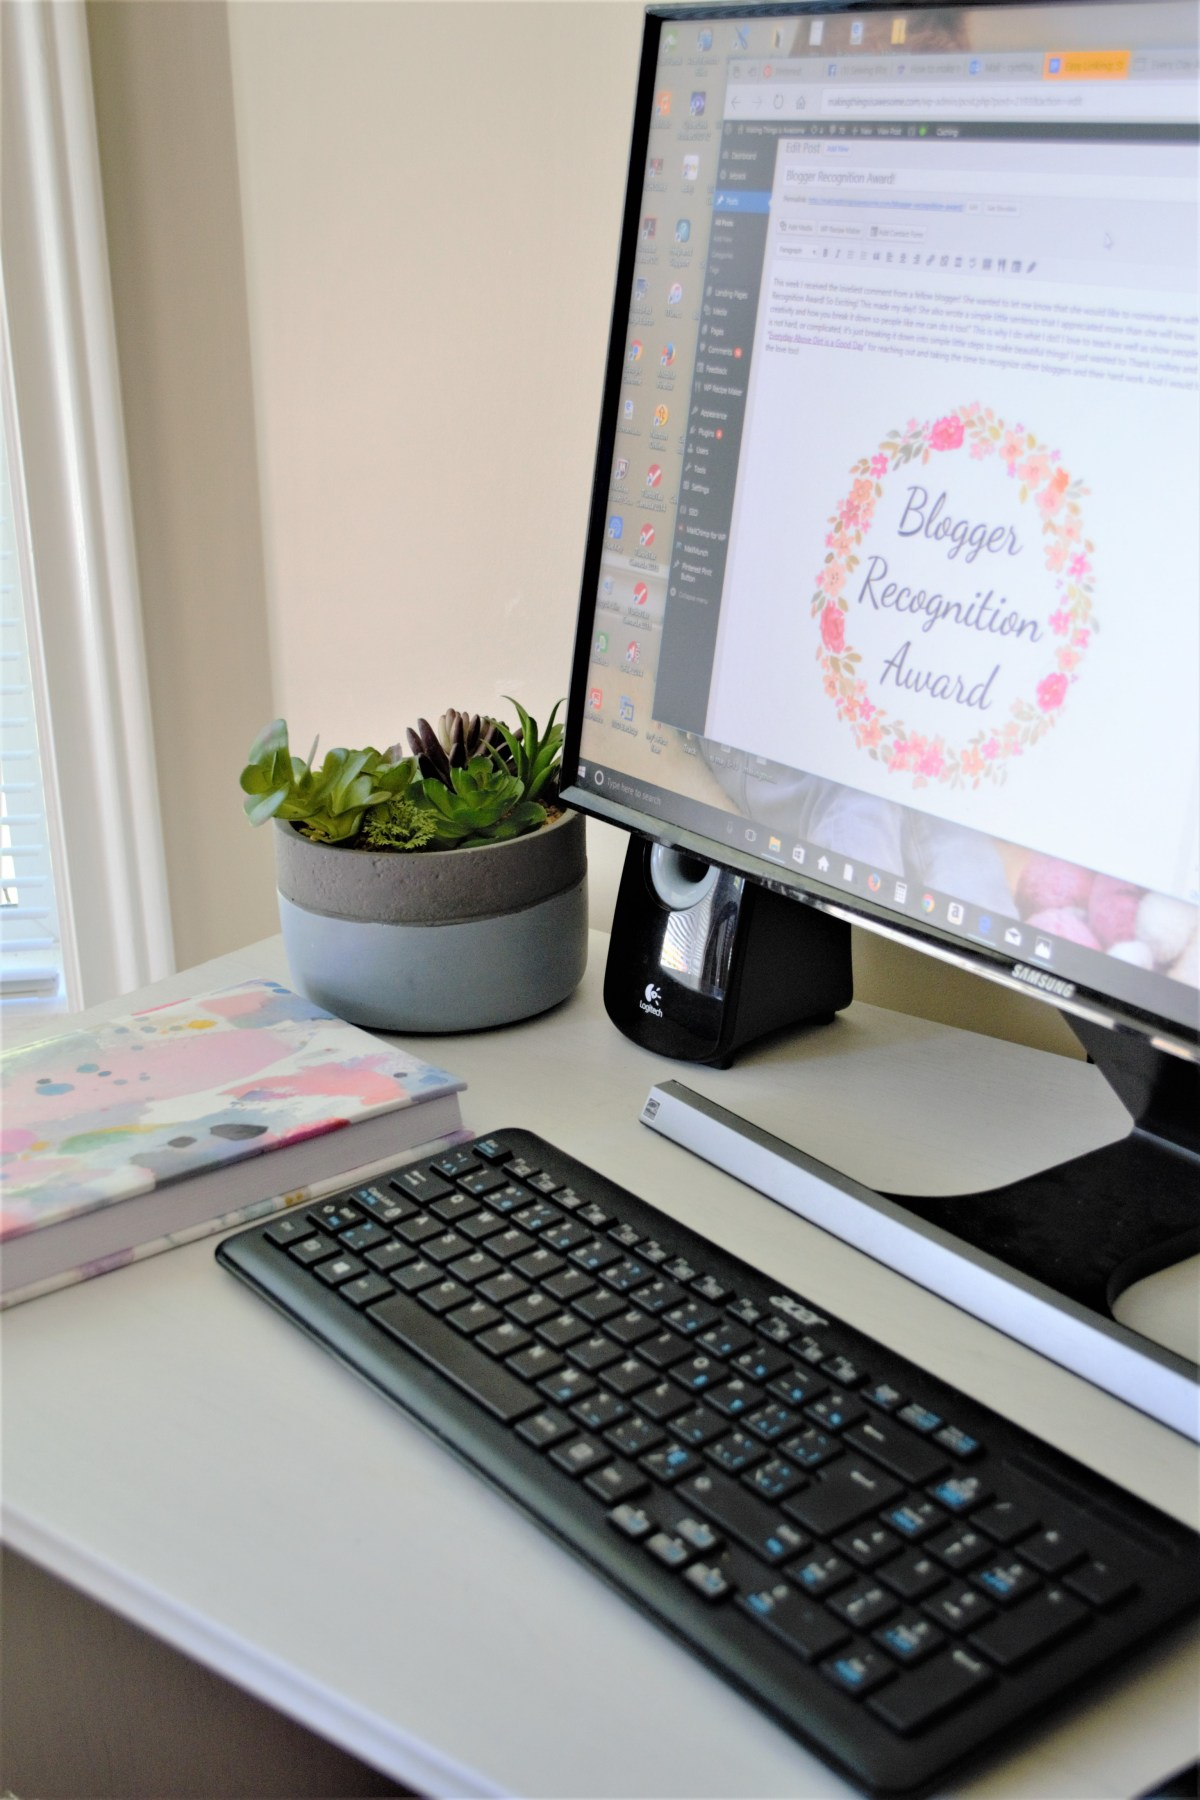 Blogger Recognition Award - my workspace